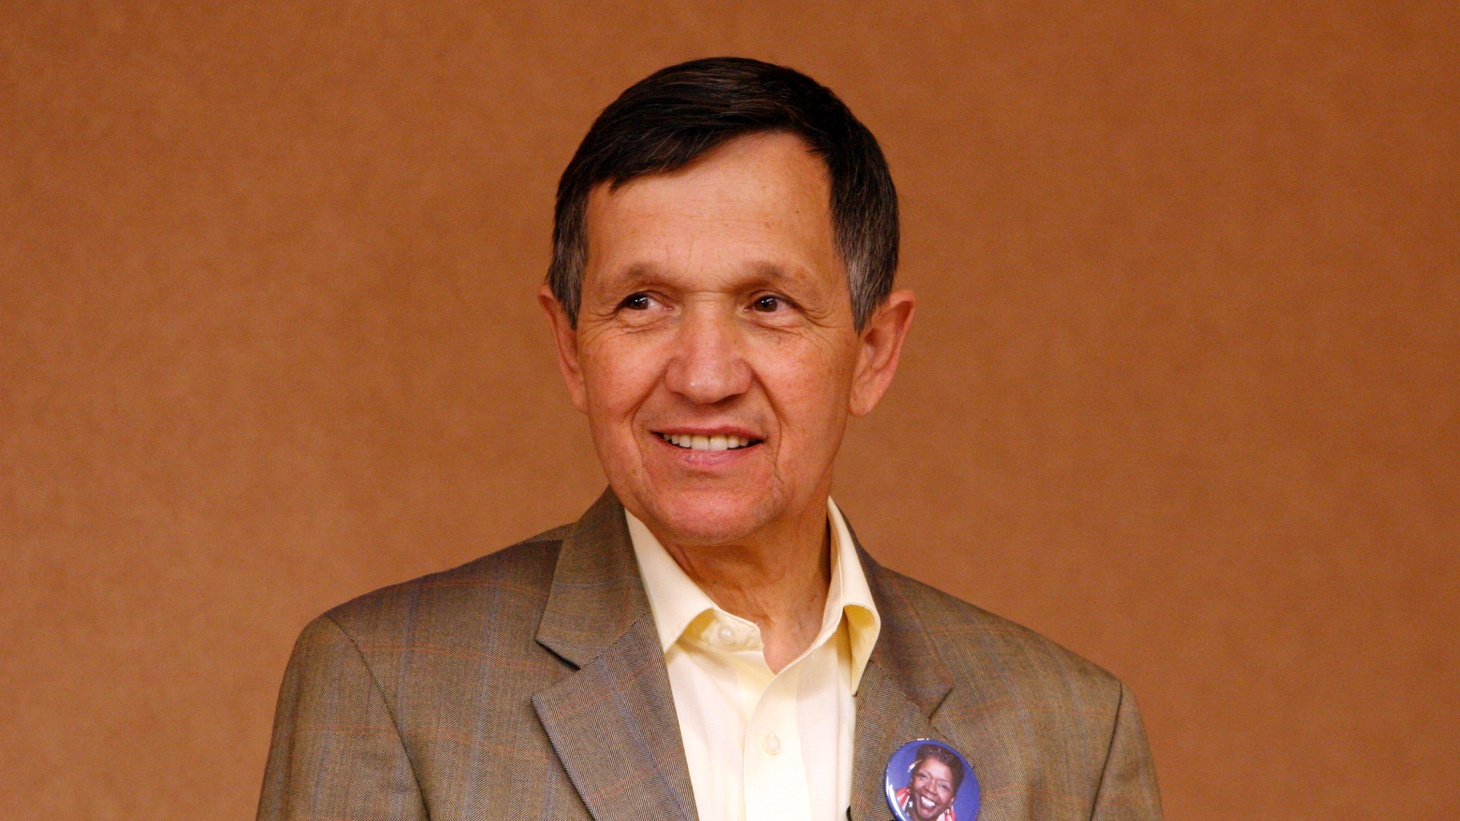 U.S. House Representative Dennis Kucinich (D-Ohio) waits to speak to a crowd at the 2008 DNC.